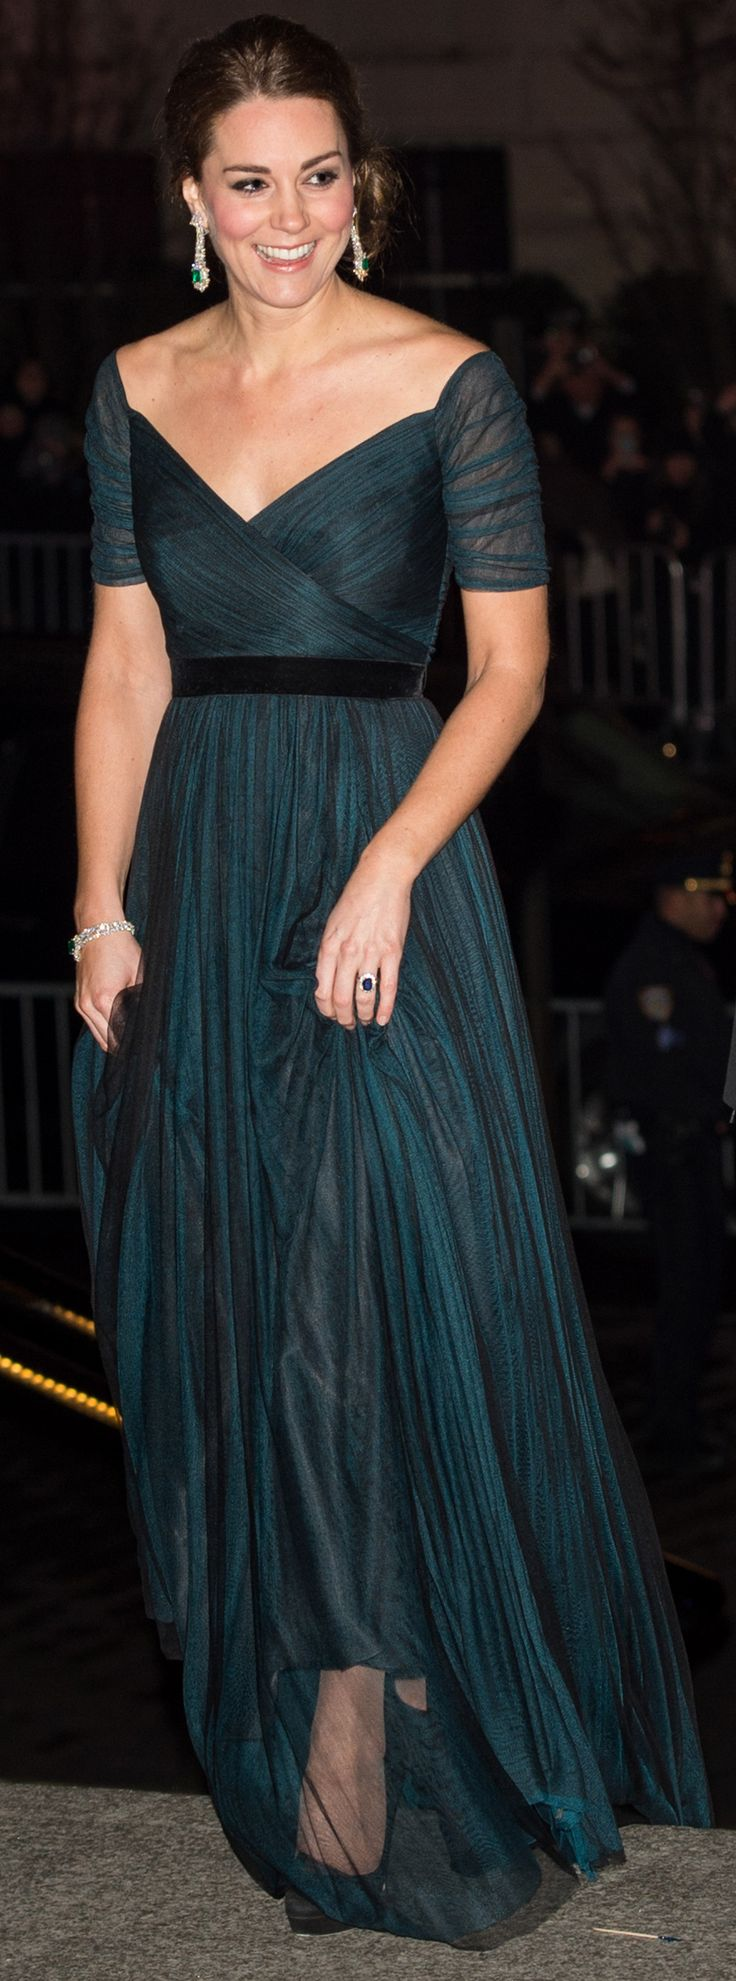 Here are 38 fashionable ensembles our favorite royals have worn, all of which are totally appropriate for the swanky soirées you might attend to ring in the new year.